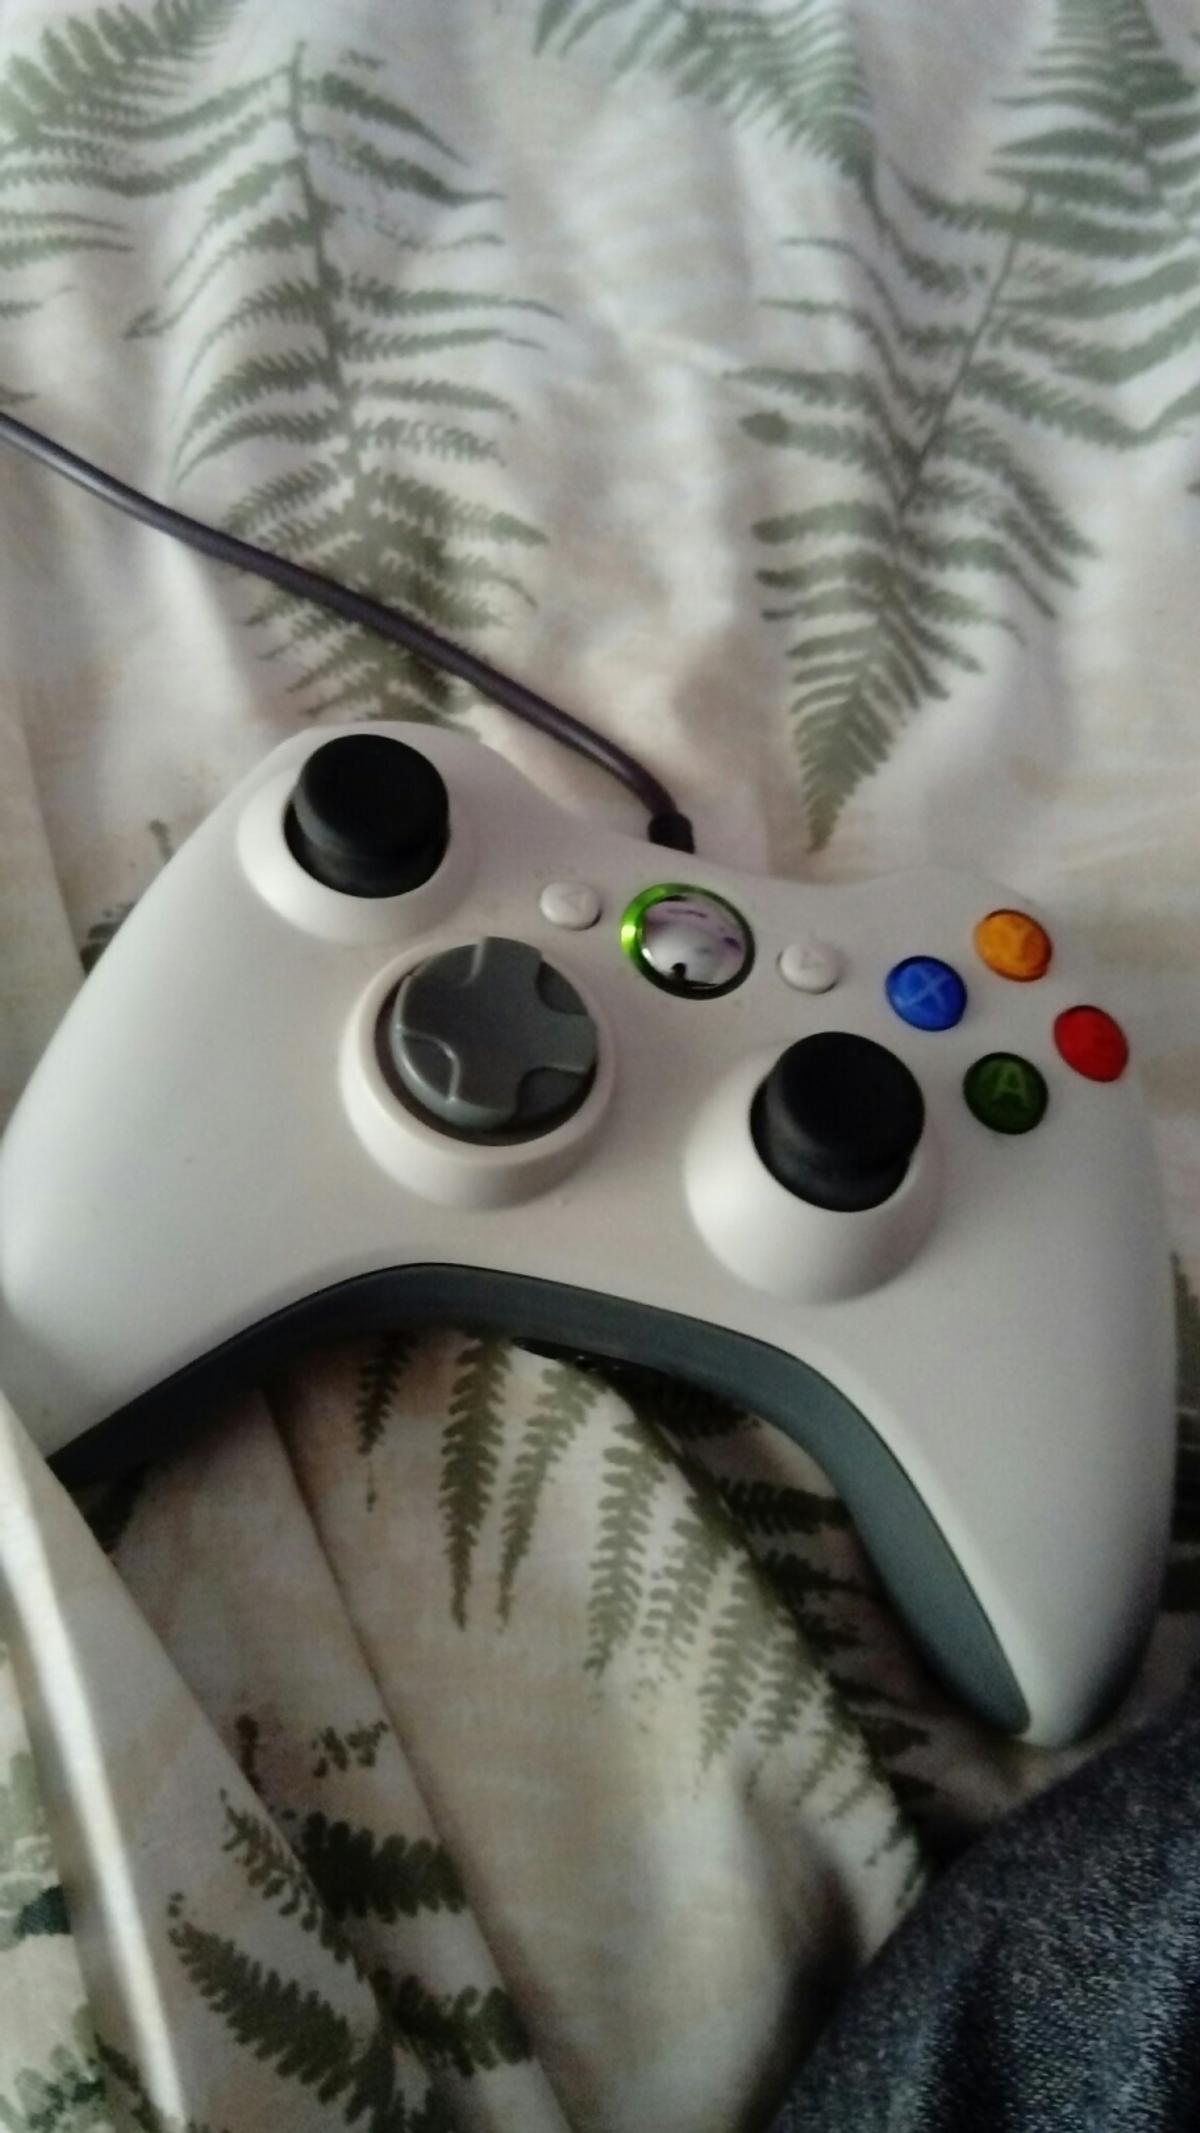 wired xbox 360 remote controller